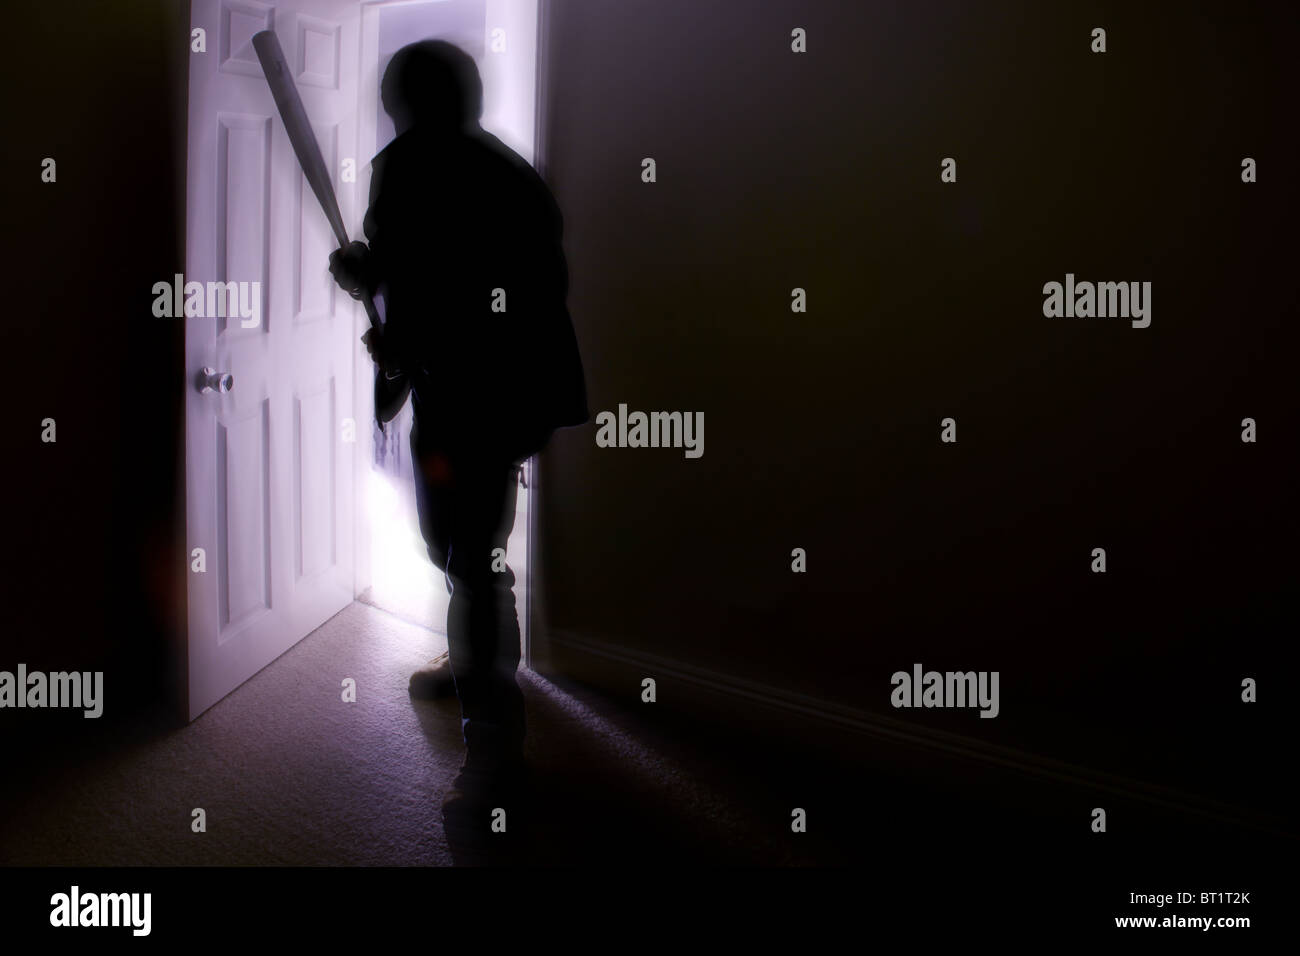 Silhouette of a male with a baseball bat entering a dark room - Stock Image